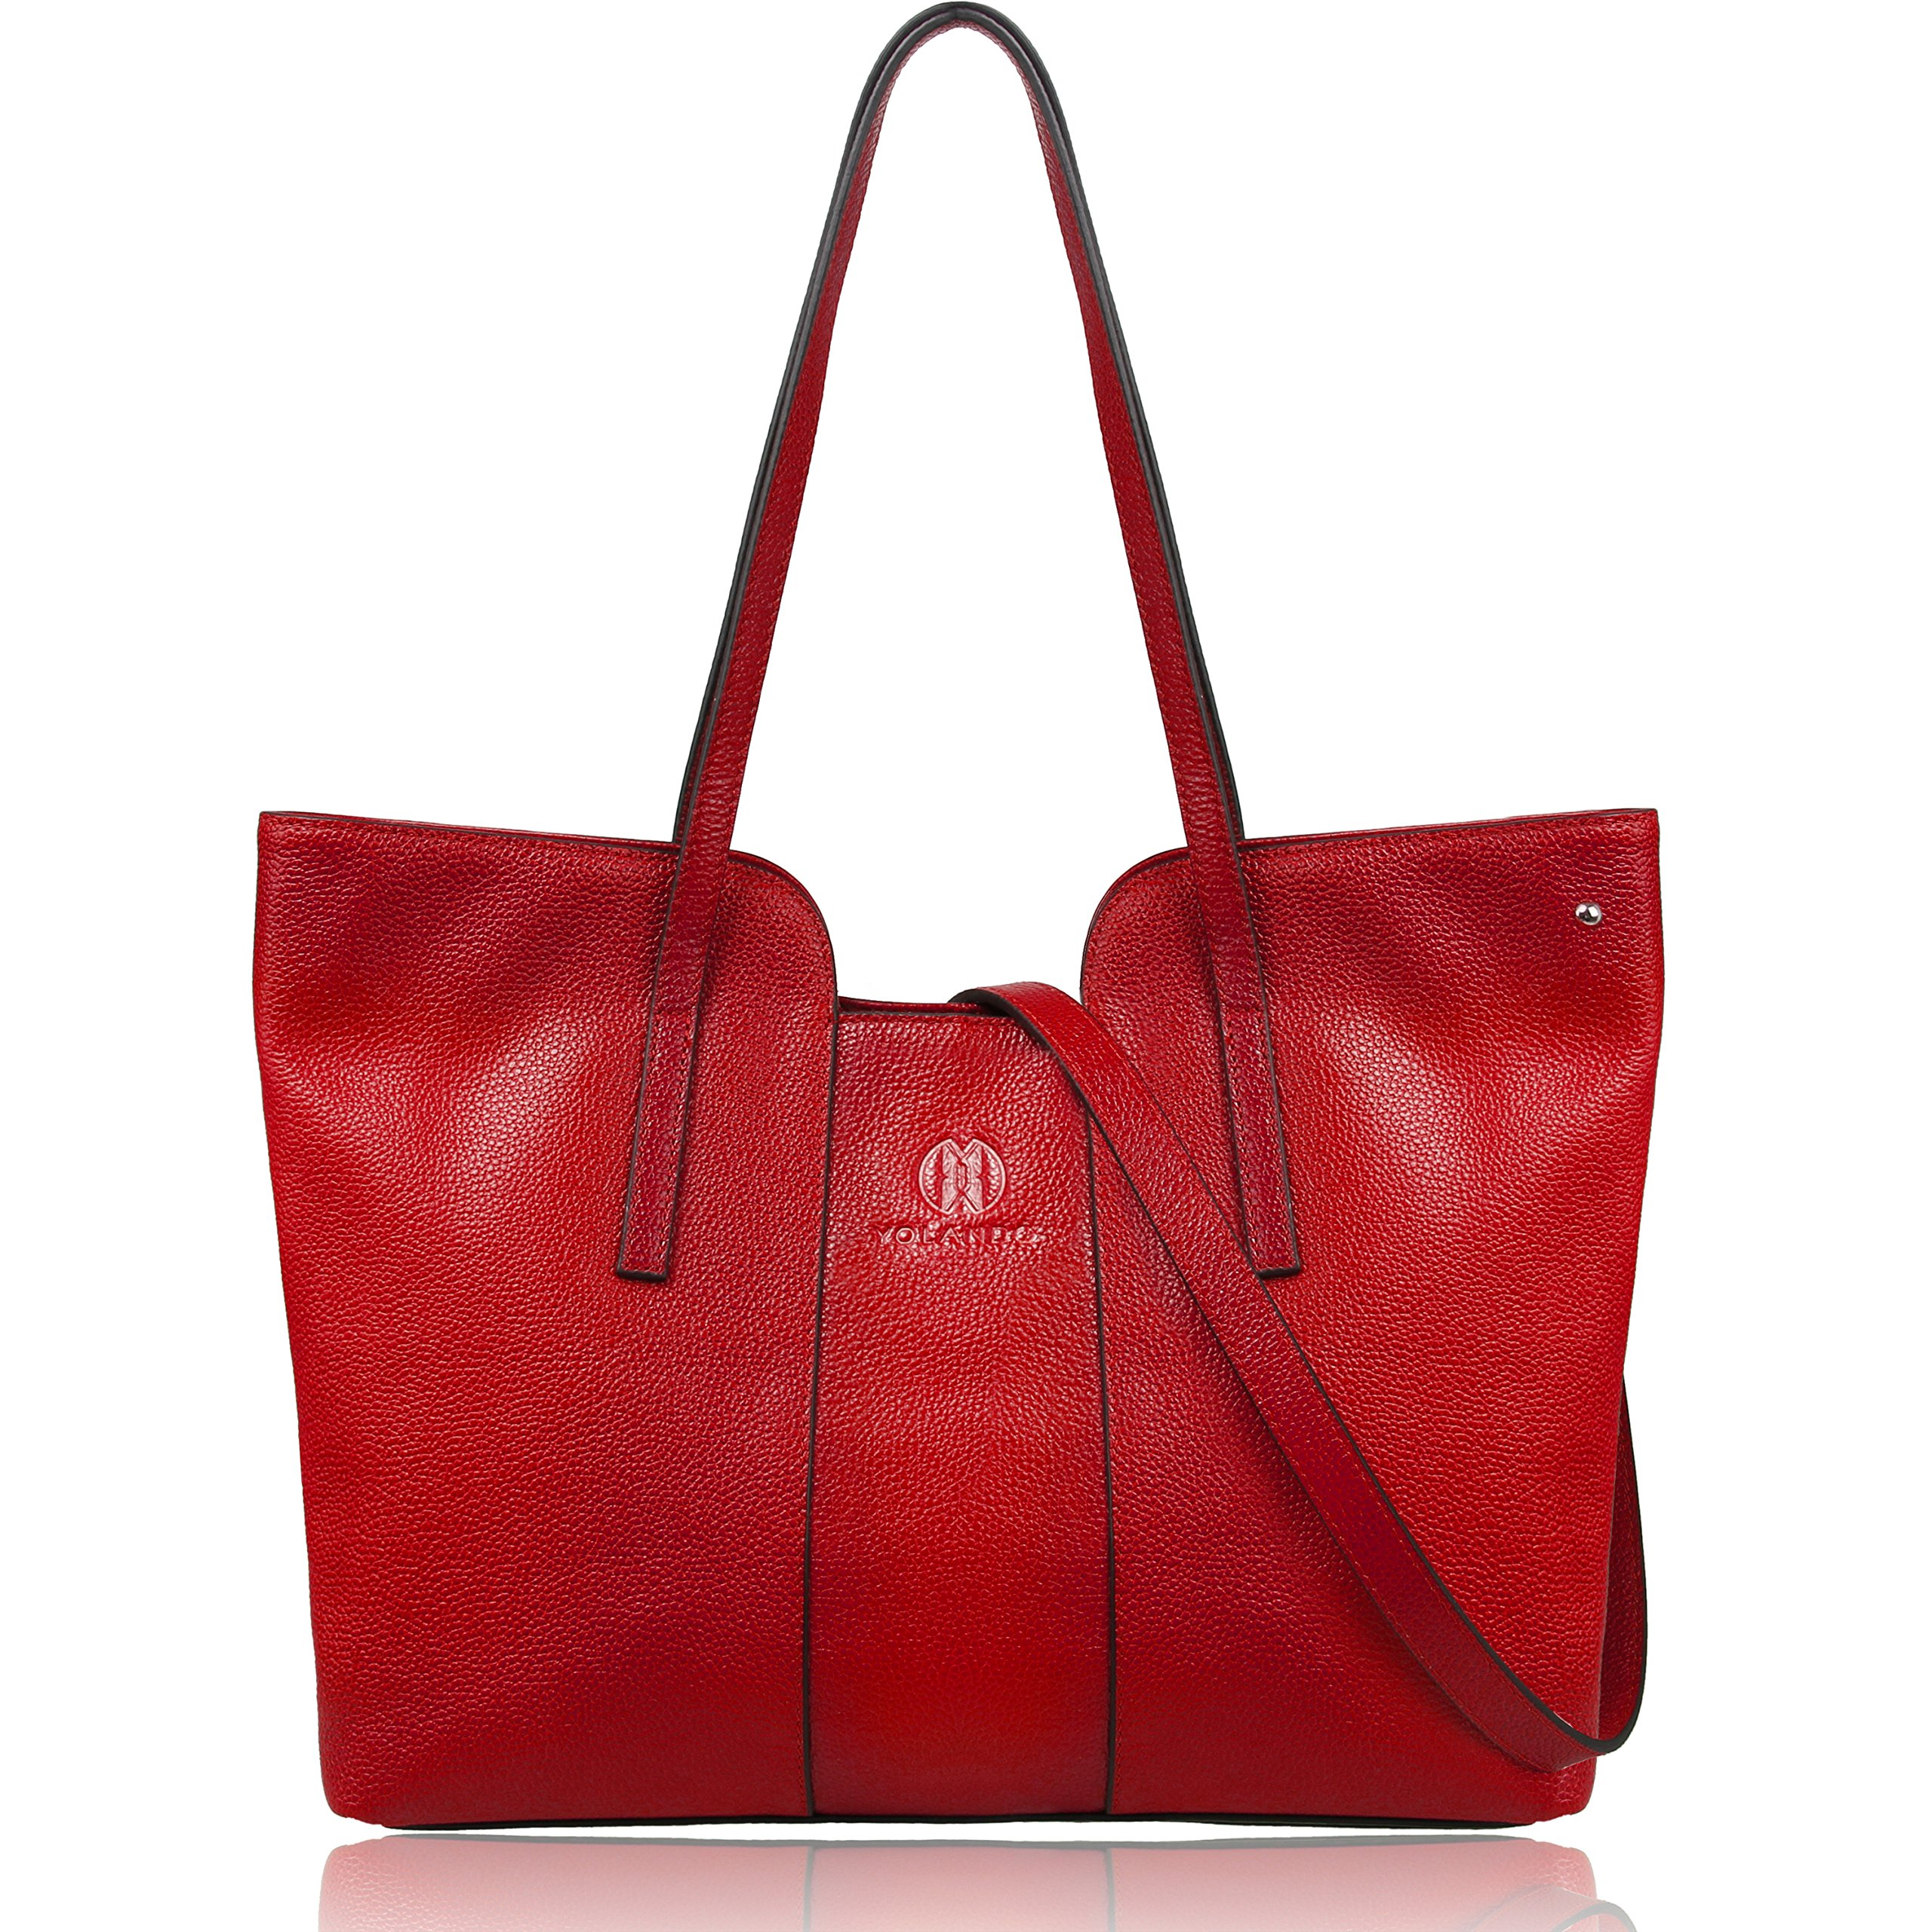 YOLANDO Women Genuine Leather Zipper Tote Bag Top-handle Handbags Large Capacity Ladies' Purse YTG01 (Red)